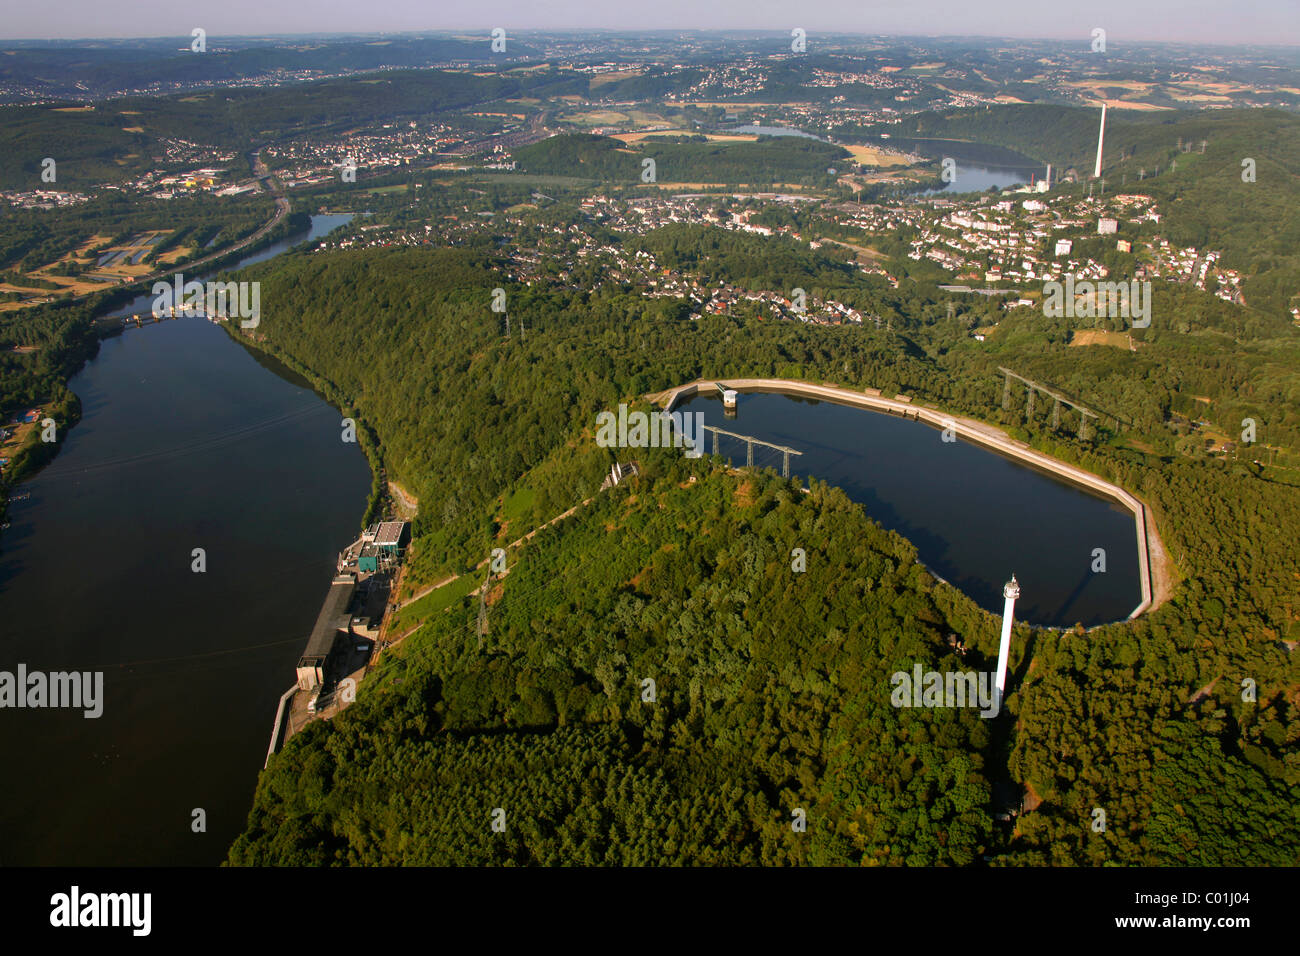 Aerial view, Koepchenwerk pumped-storage plant with reservoirs owned by RWE, a German electric power company, Ruhr - Stock Image